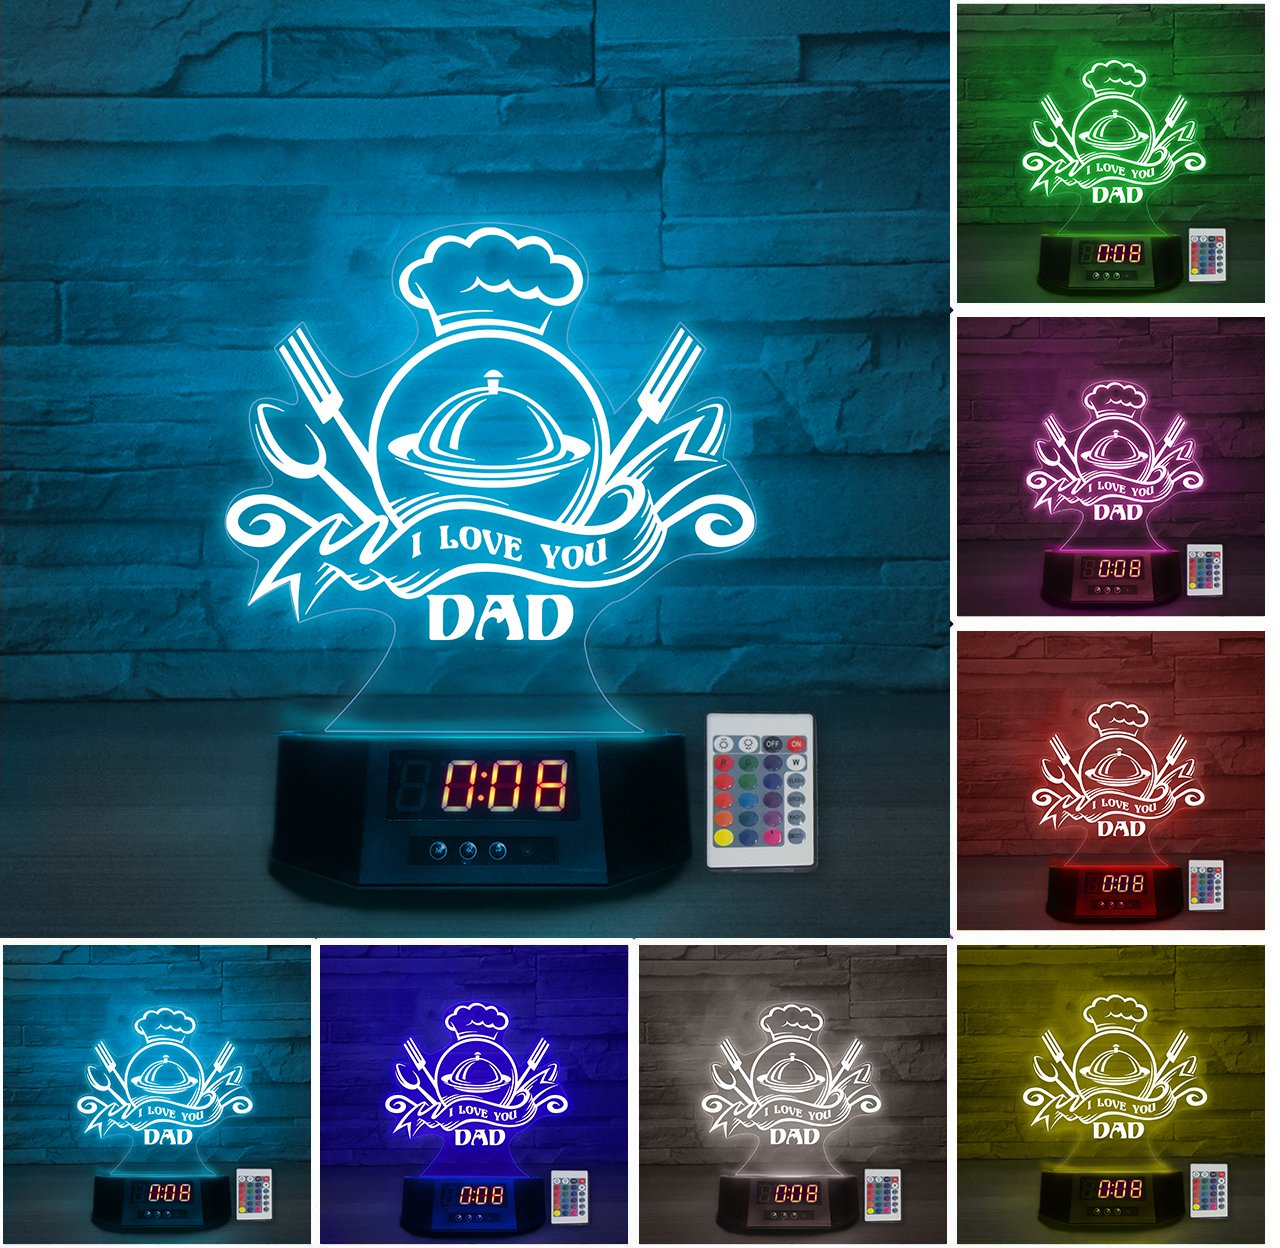 LED Lamp - I love you DAD - Chef ATDK190401b